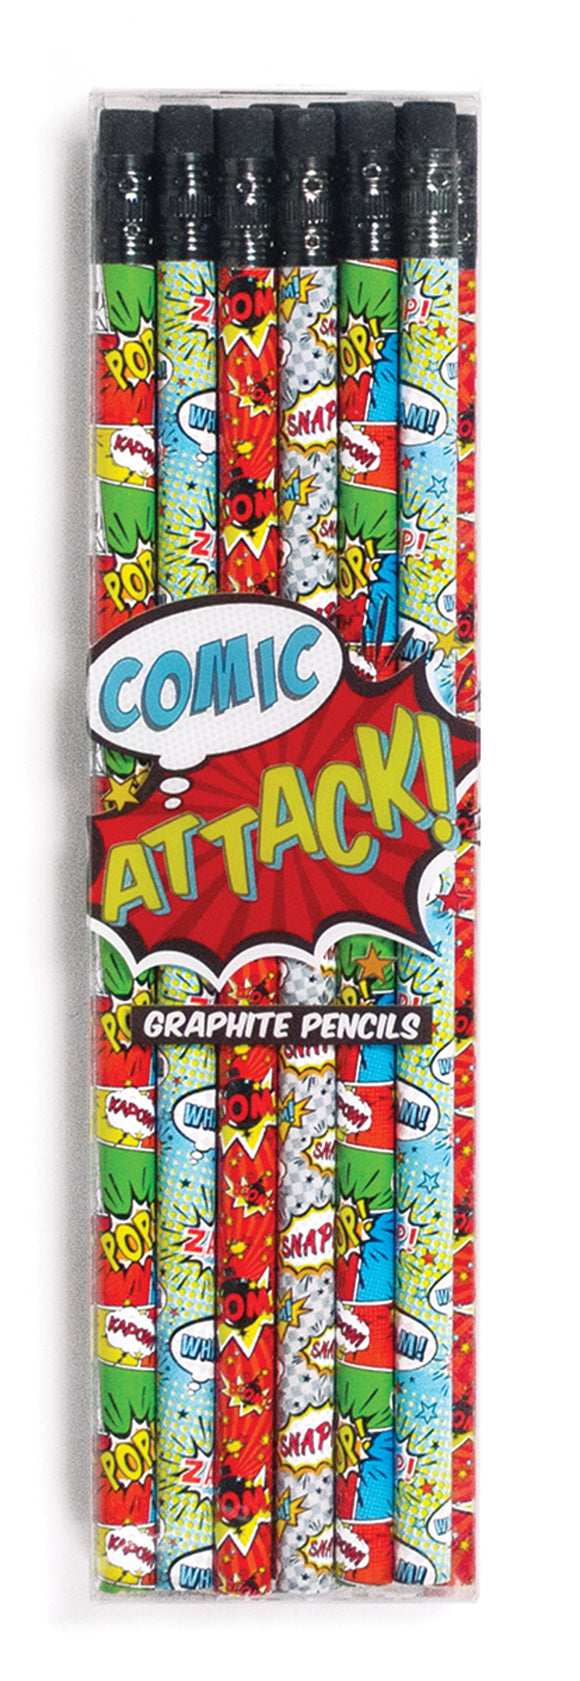 Comic Attack Graphite Pencils